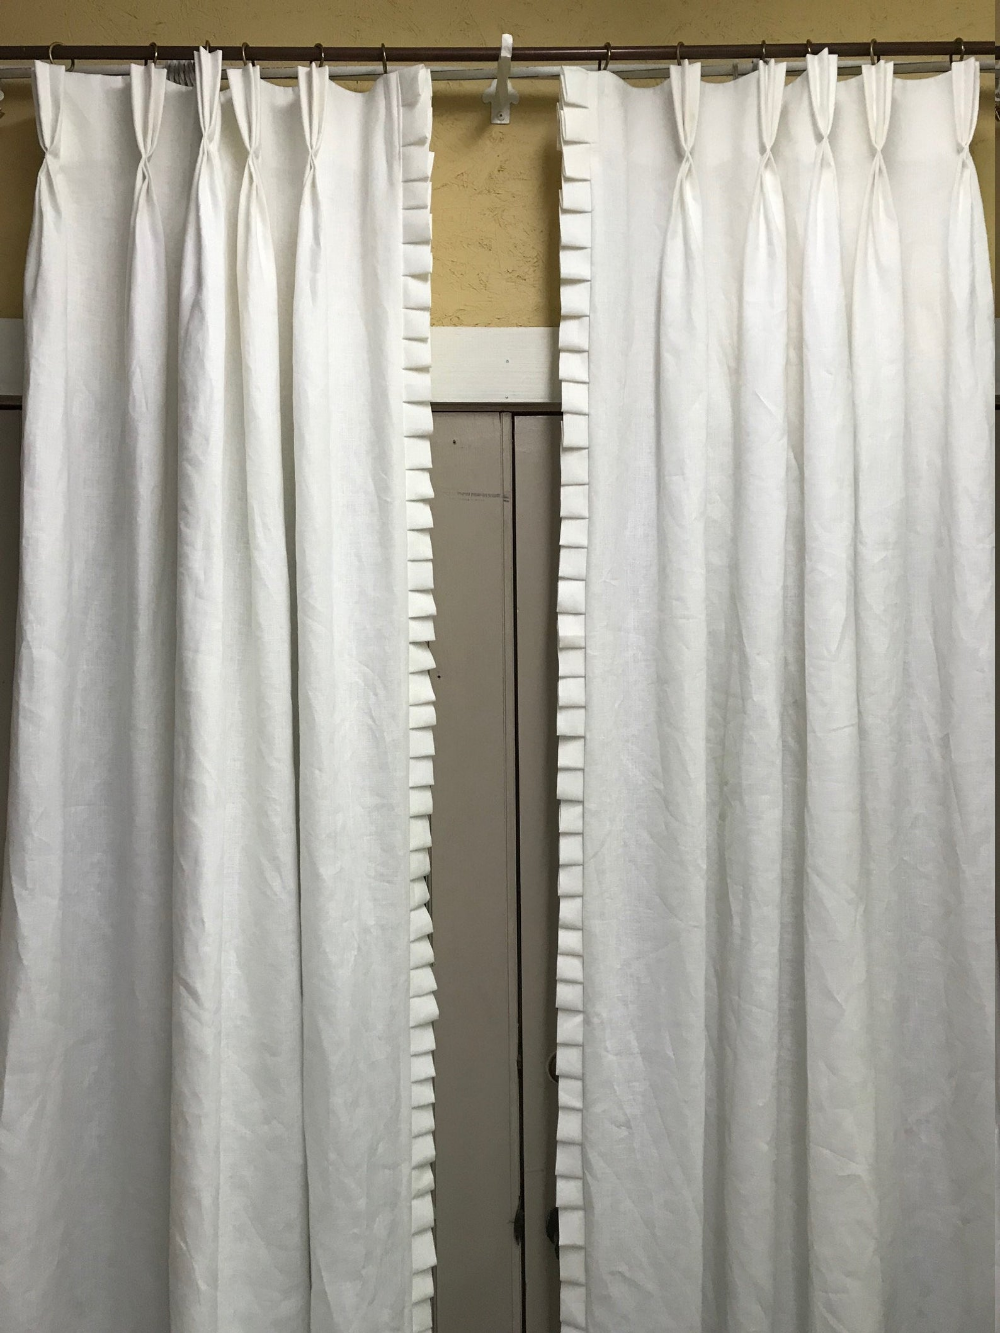 Handmade White Linen Drapes One Pair Single Width Linen Drapery Panels Traditional Pinch Pleats Pleated Trim Detail Sewn Onto Leading Edges In 2020 Drapery Panels Drapery Linen Curtains